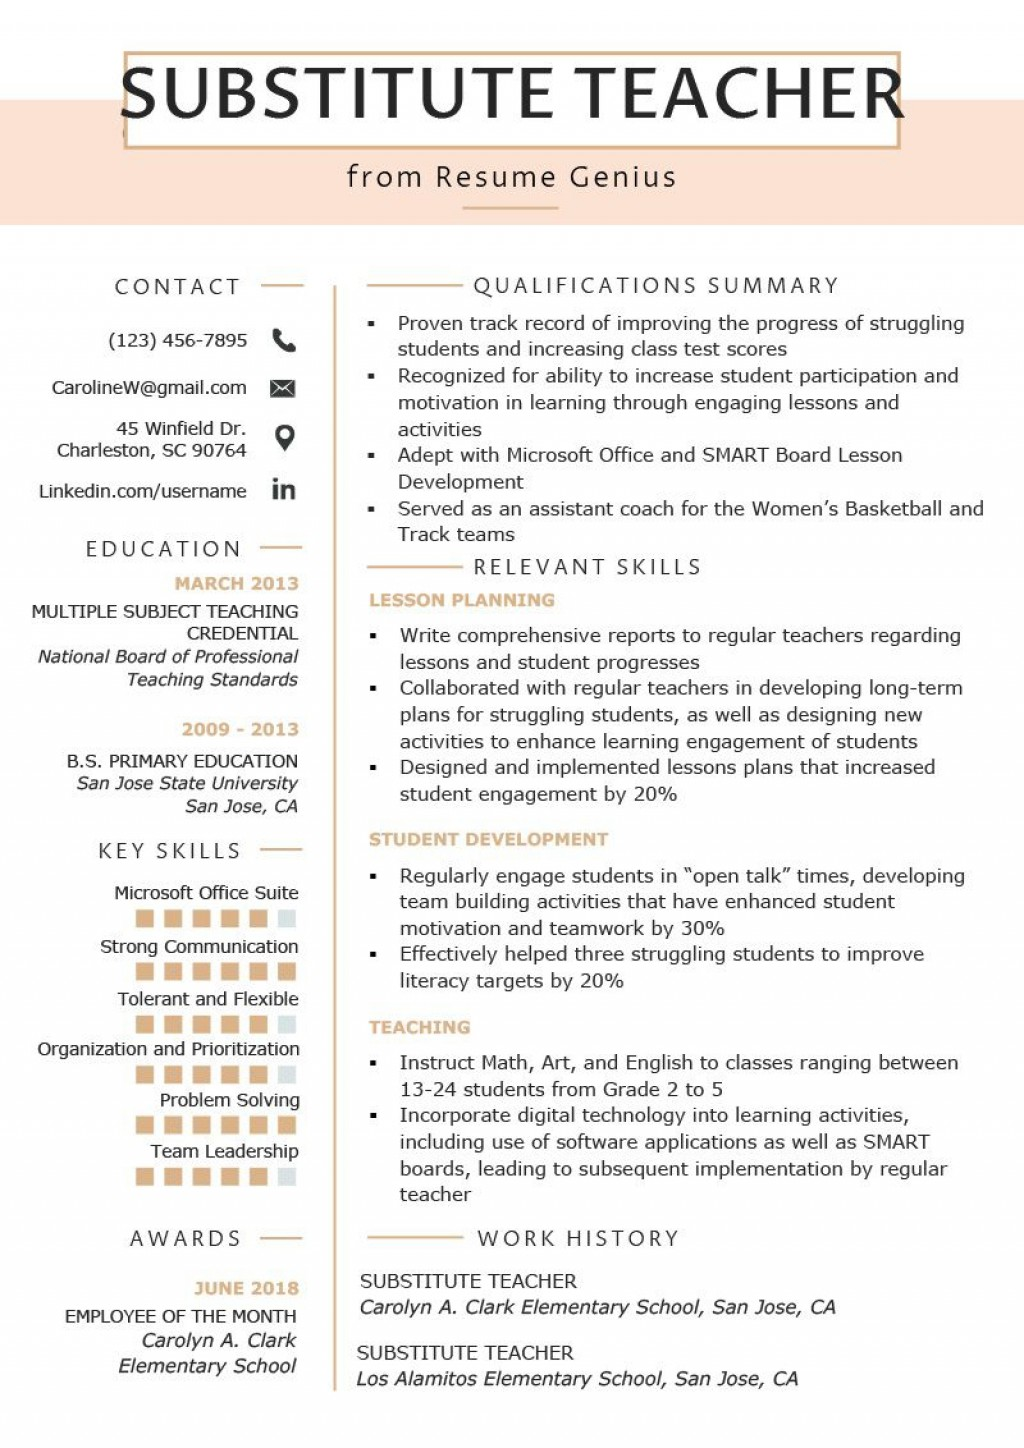 002 Incredible Resume Template For Teacher Picture  Australia Microsoft Word SampleLarge